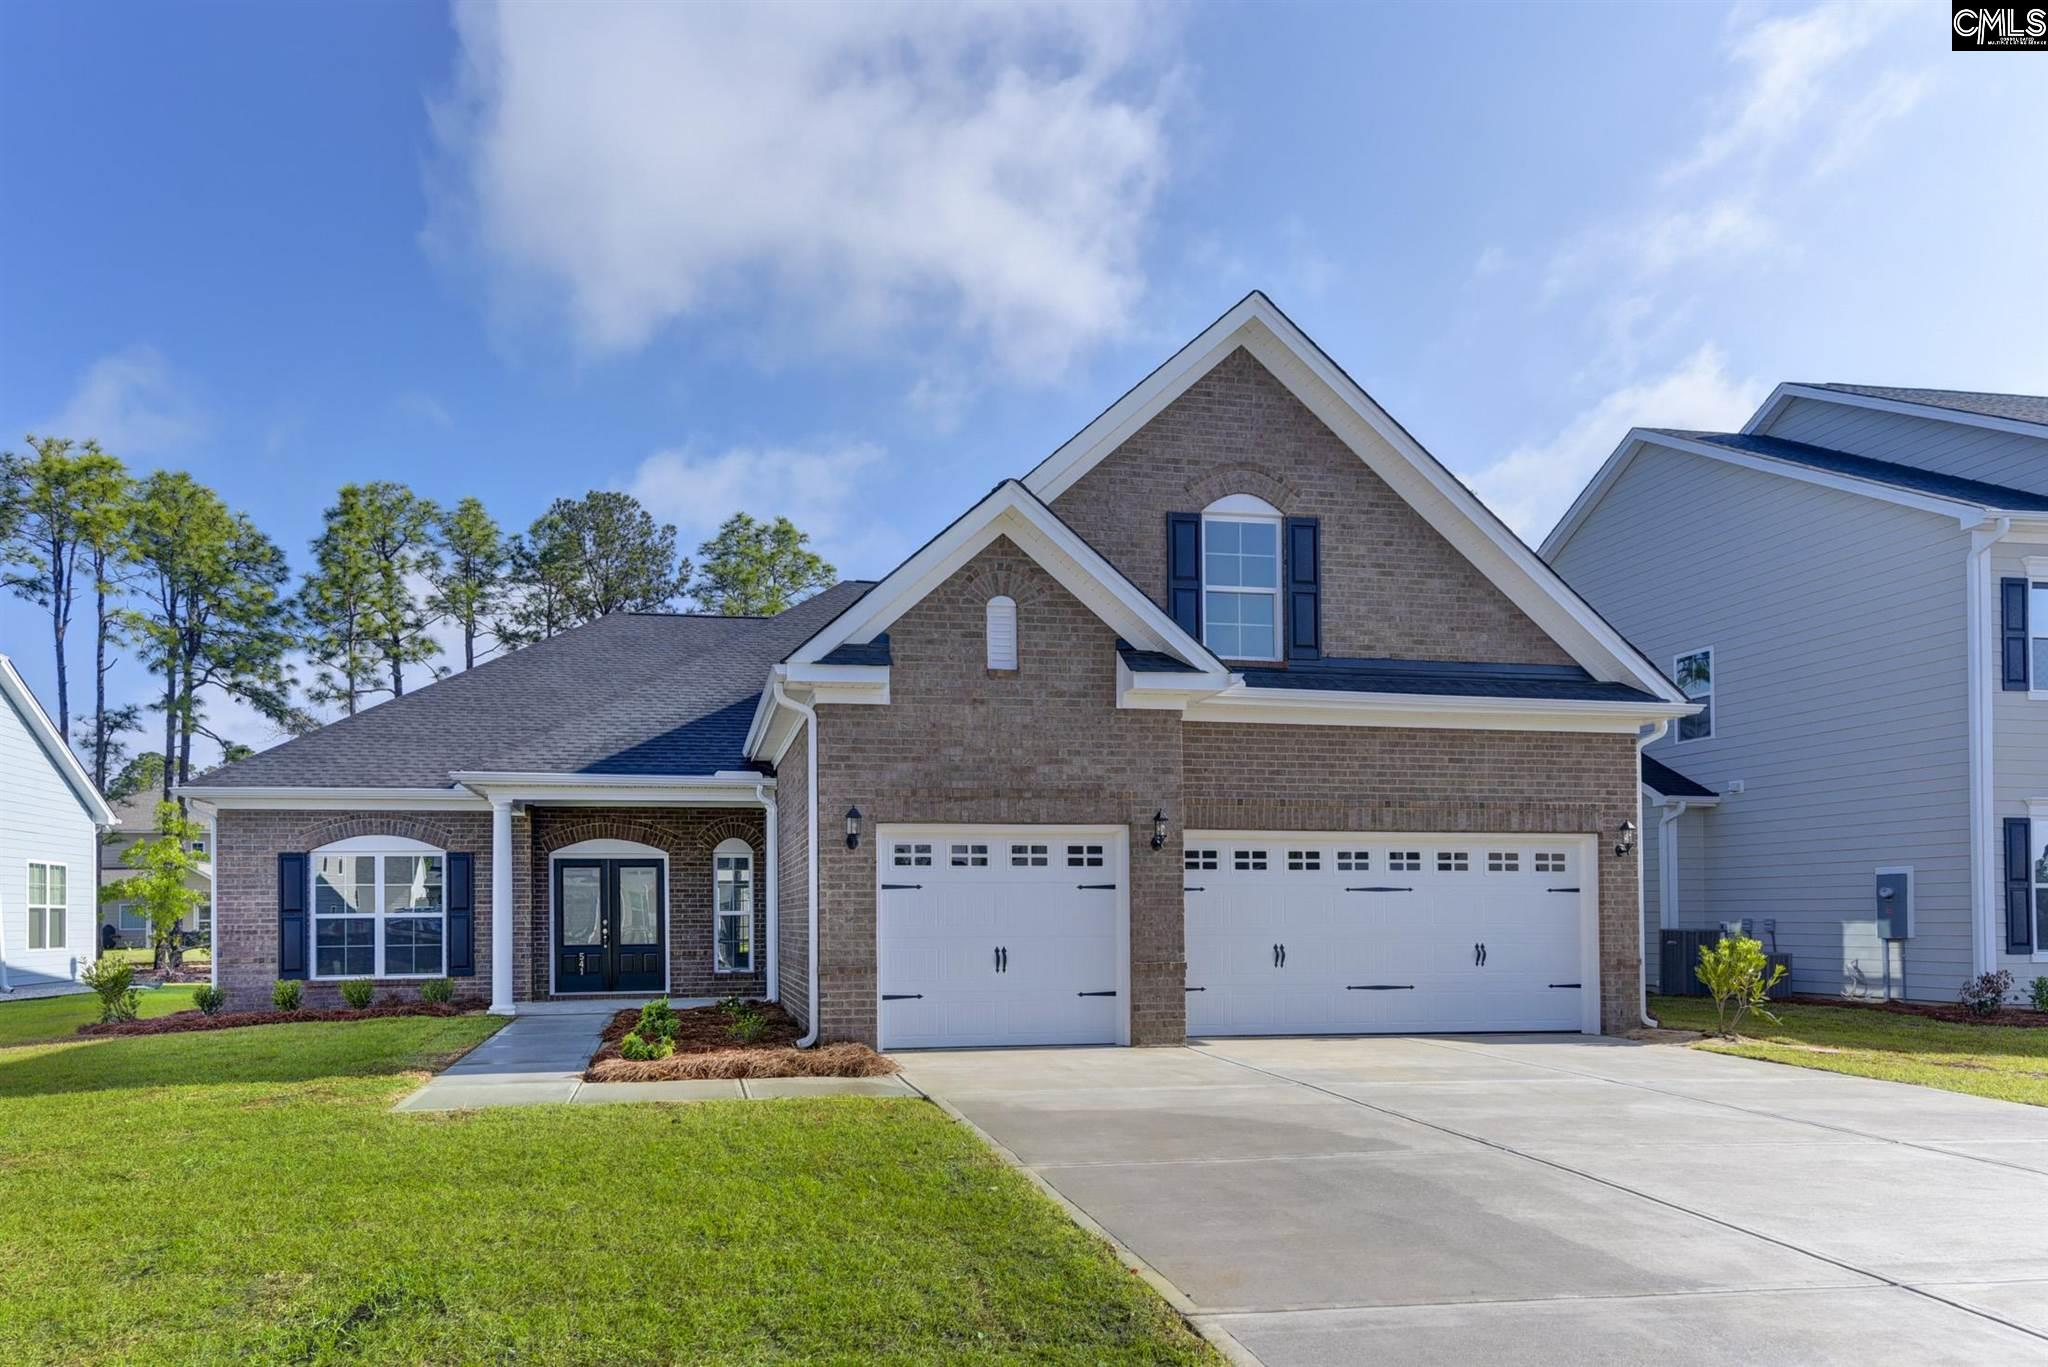 541 Pine Knot Road Blythewood, SC 29016